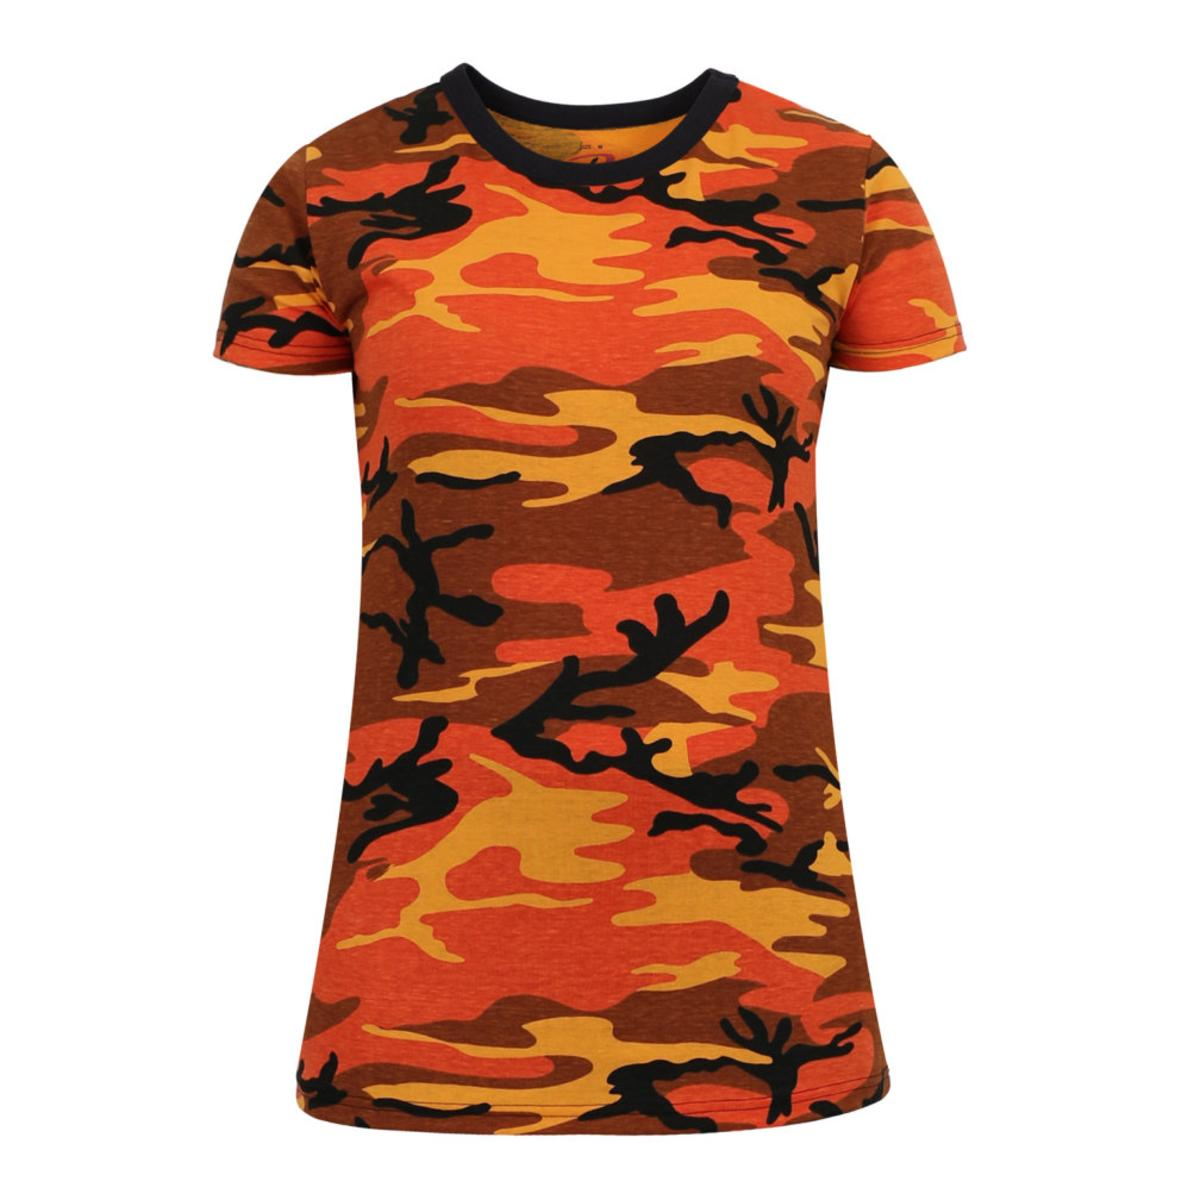 da90c78fc60ab1 Details about Rothco Womens Long Length Camouflage T-Shirt